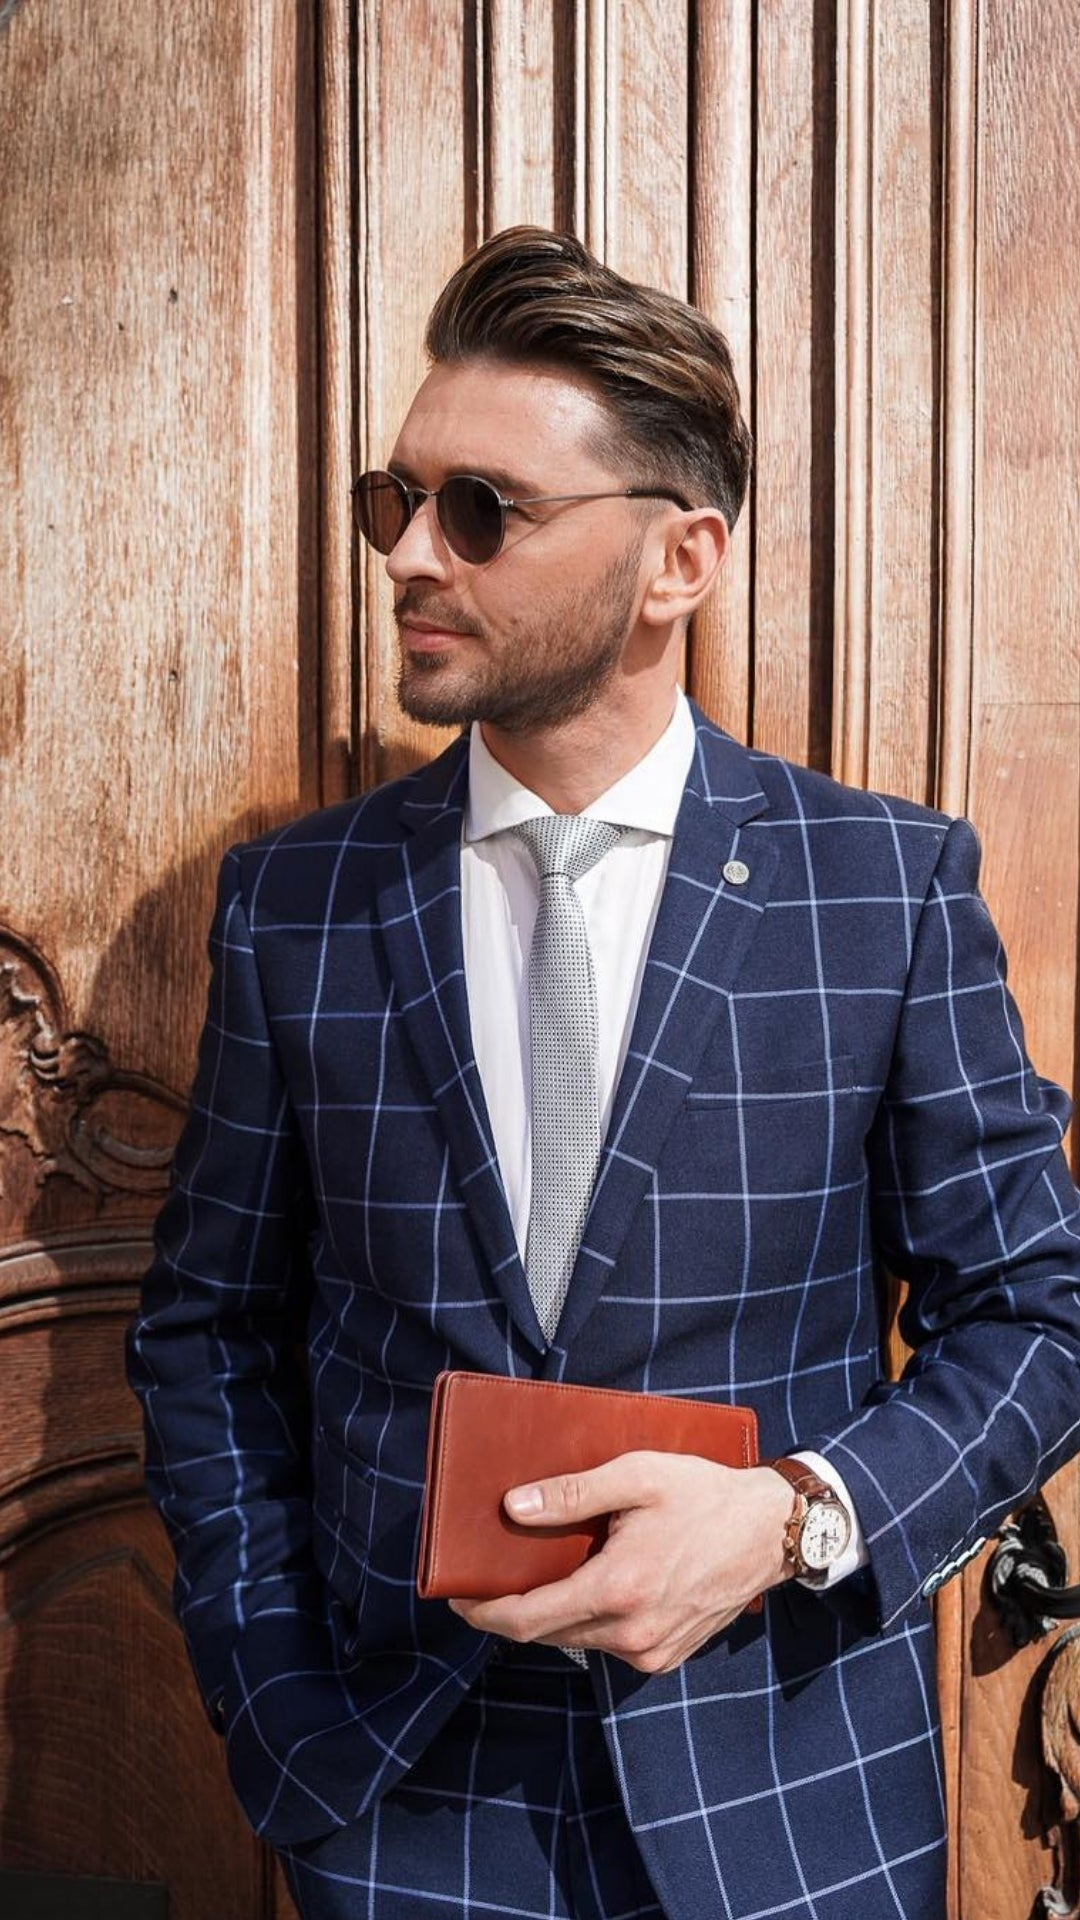 Found: The Best Blazer Outfits For Men #blazer #outfits #mensfashion #streetstyle #formaloutfits